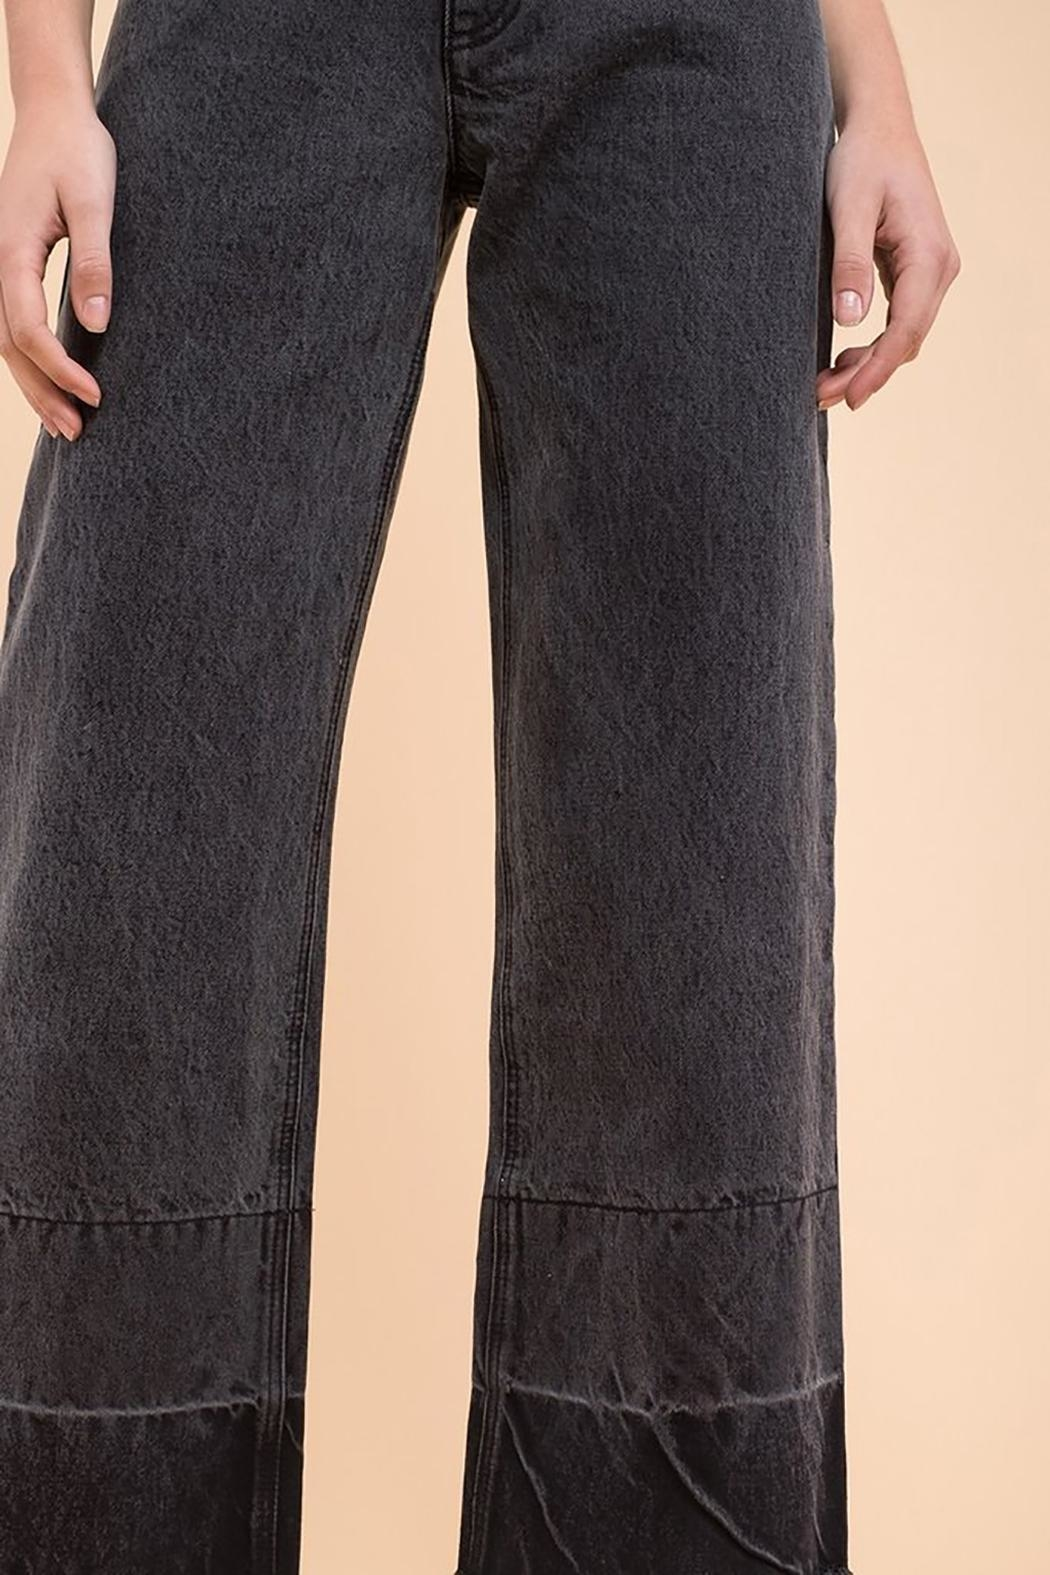 EVIDNT Two-Tone Wide-Leg Jeans - Side Cropped Image